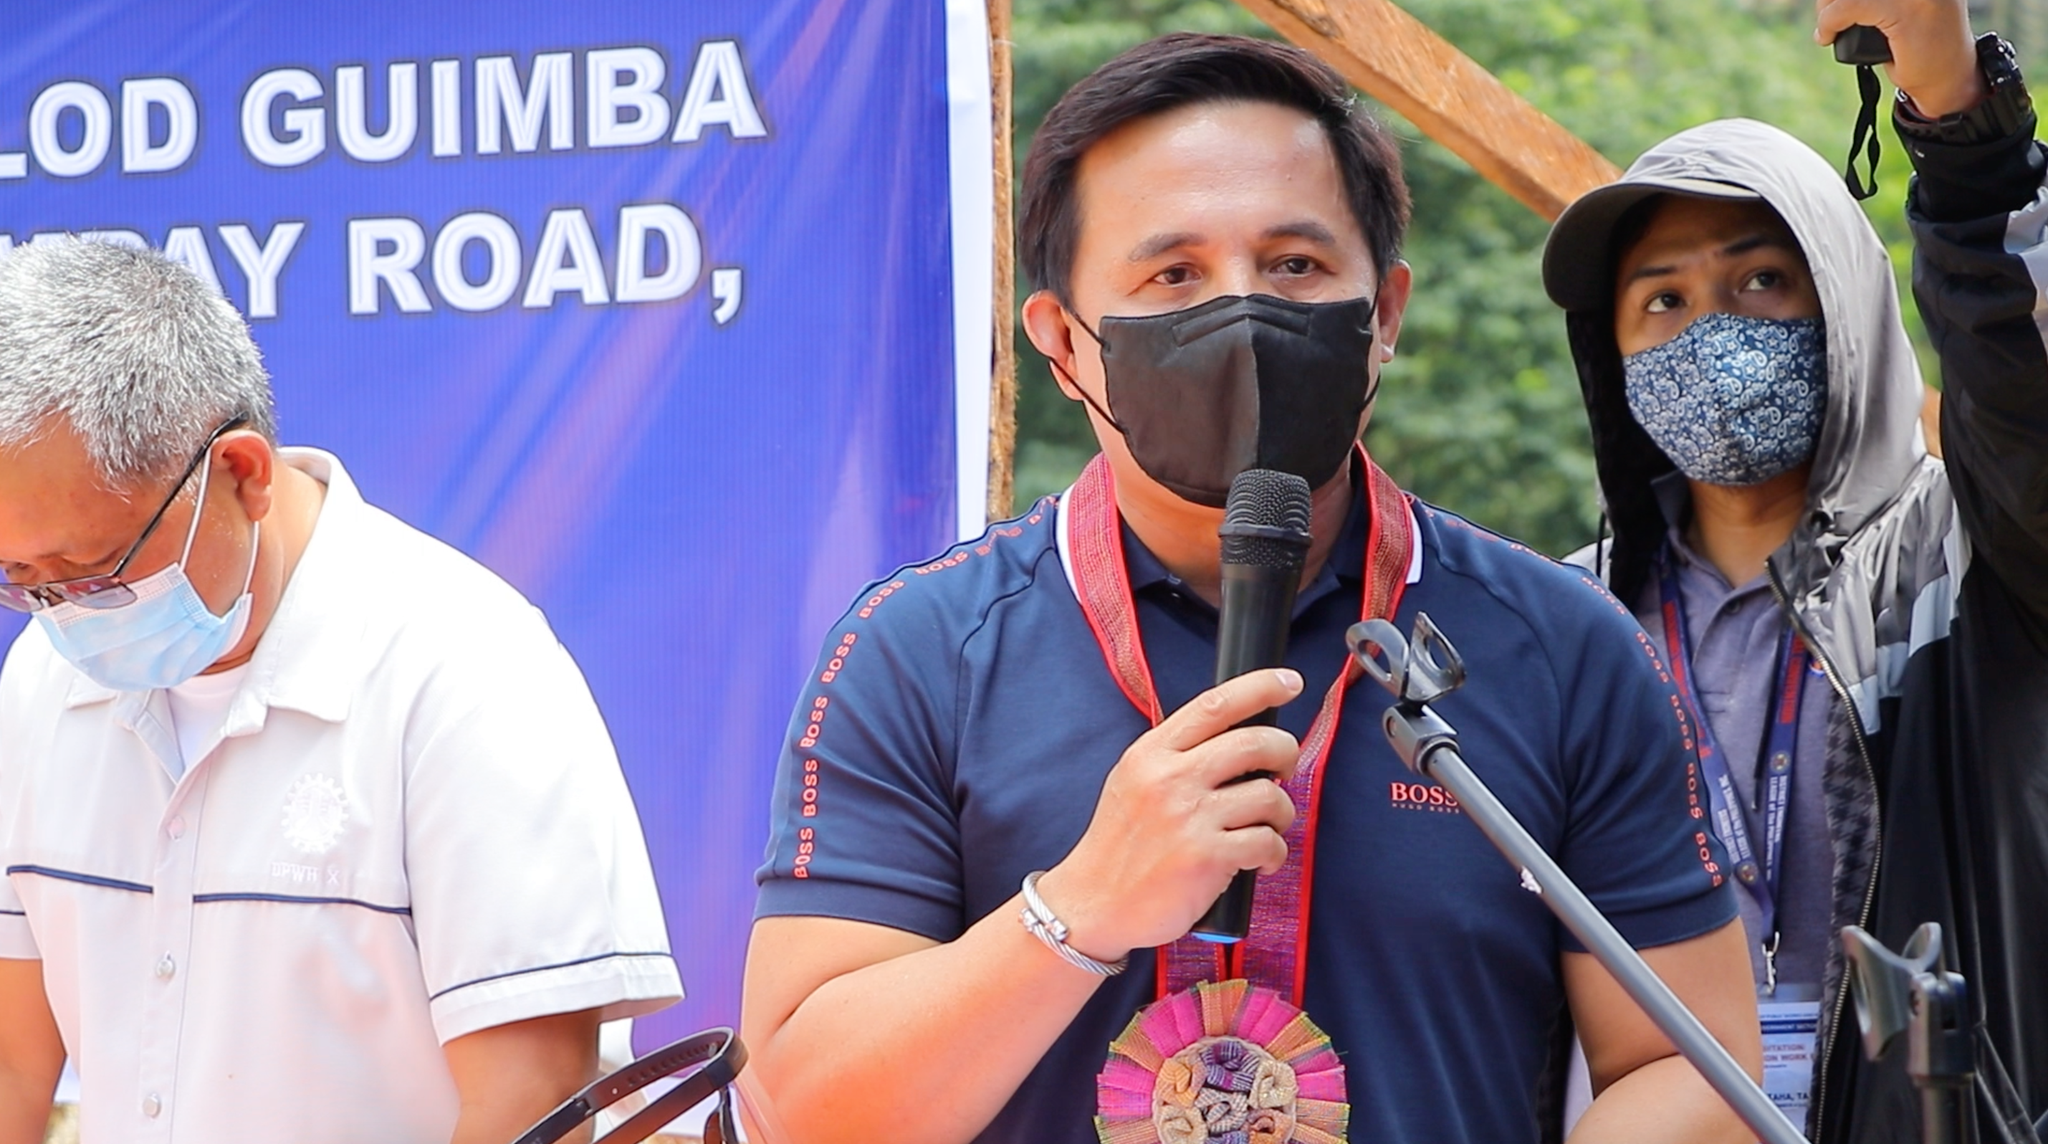 Gandamra optimistic Marawi can be economically akin to other cities